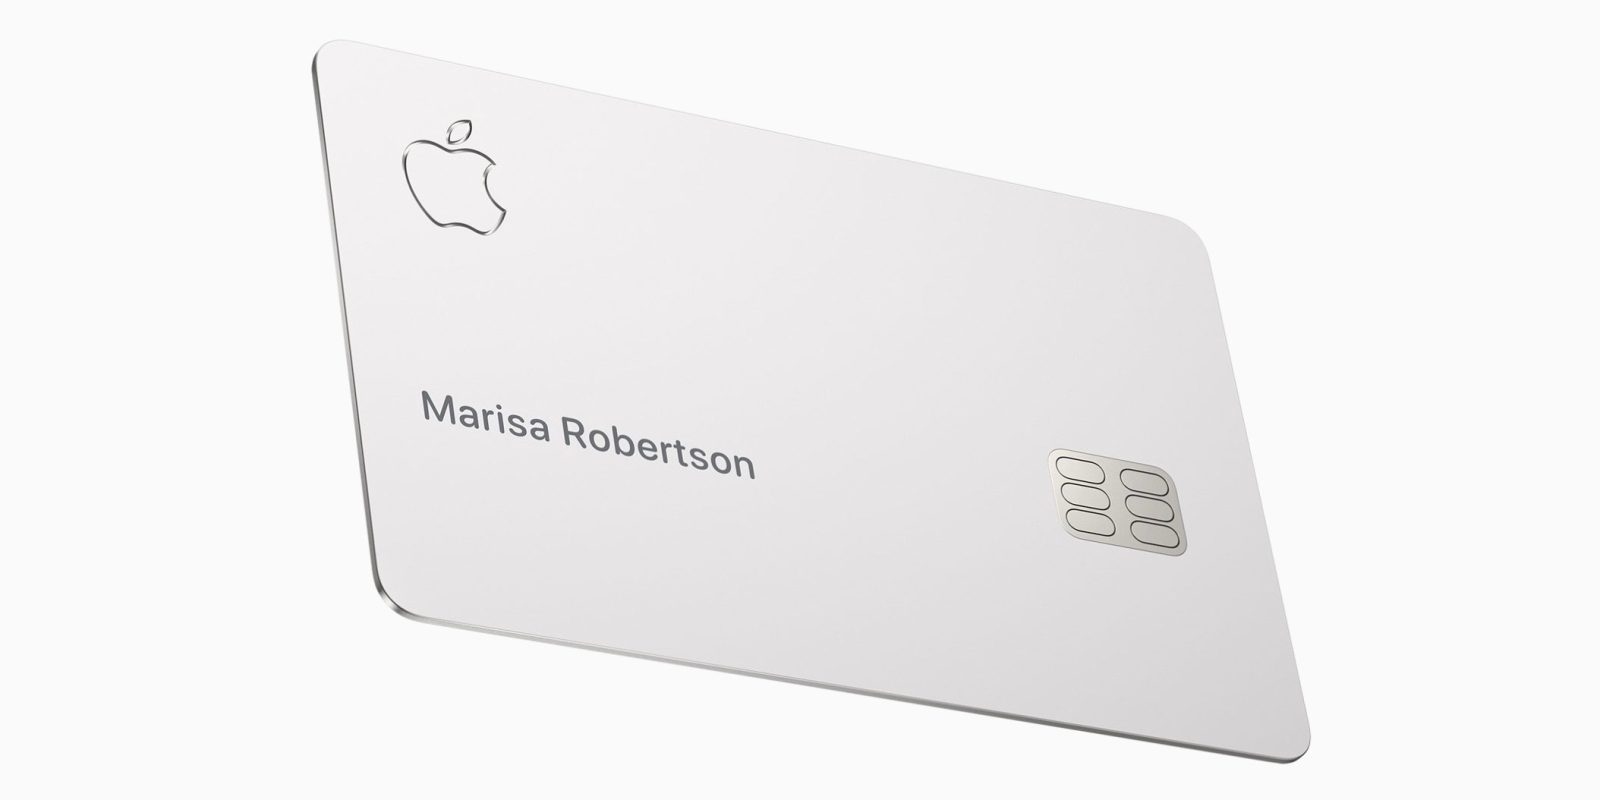 Tim Cook confirms Apple Card rollout to begin in August